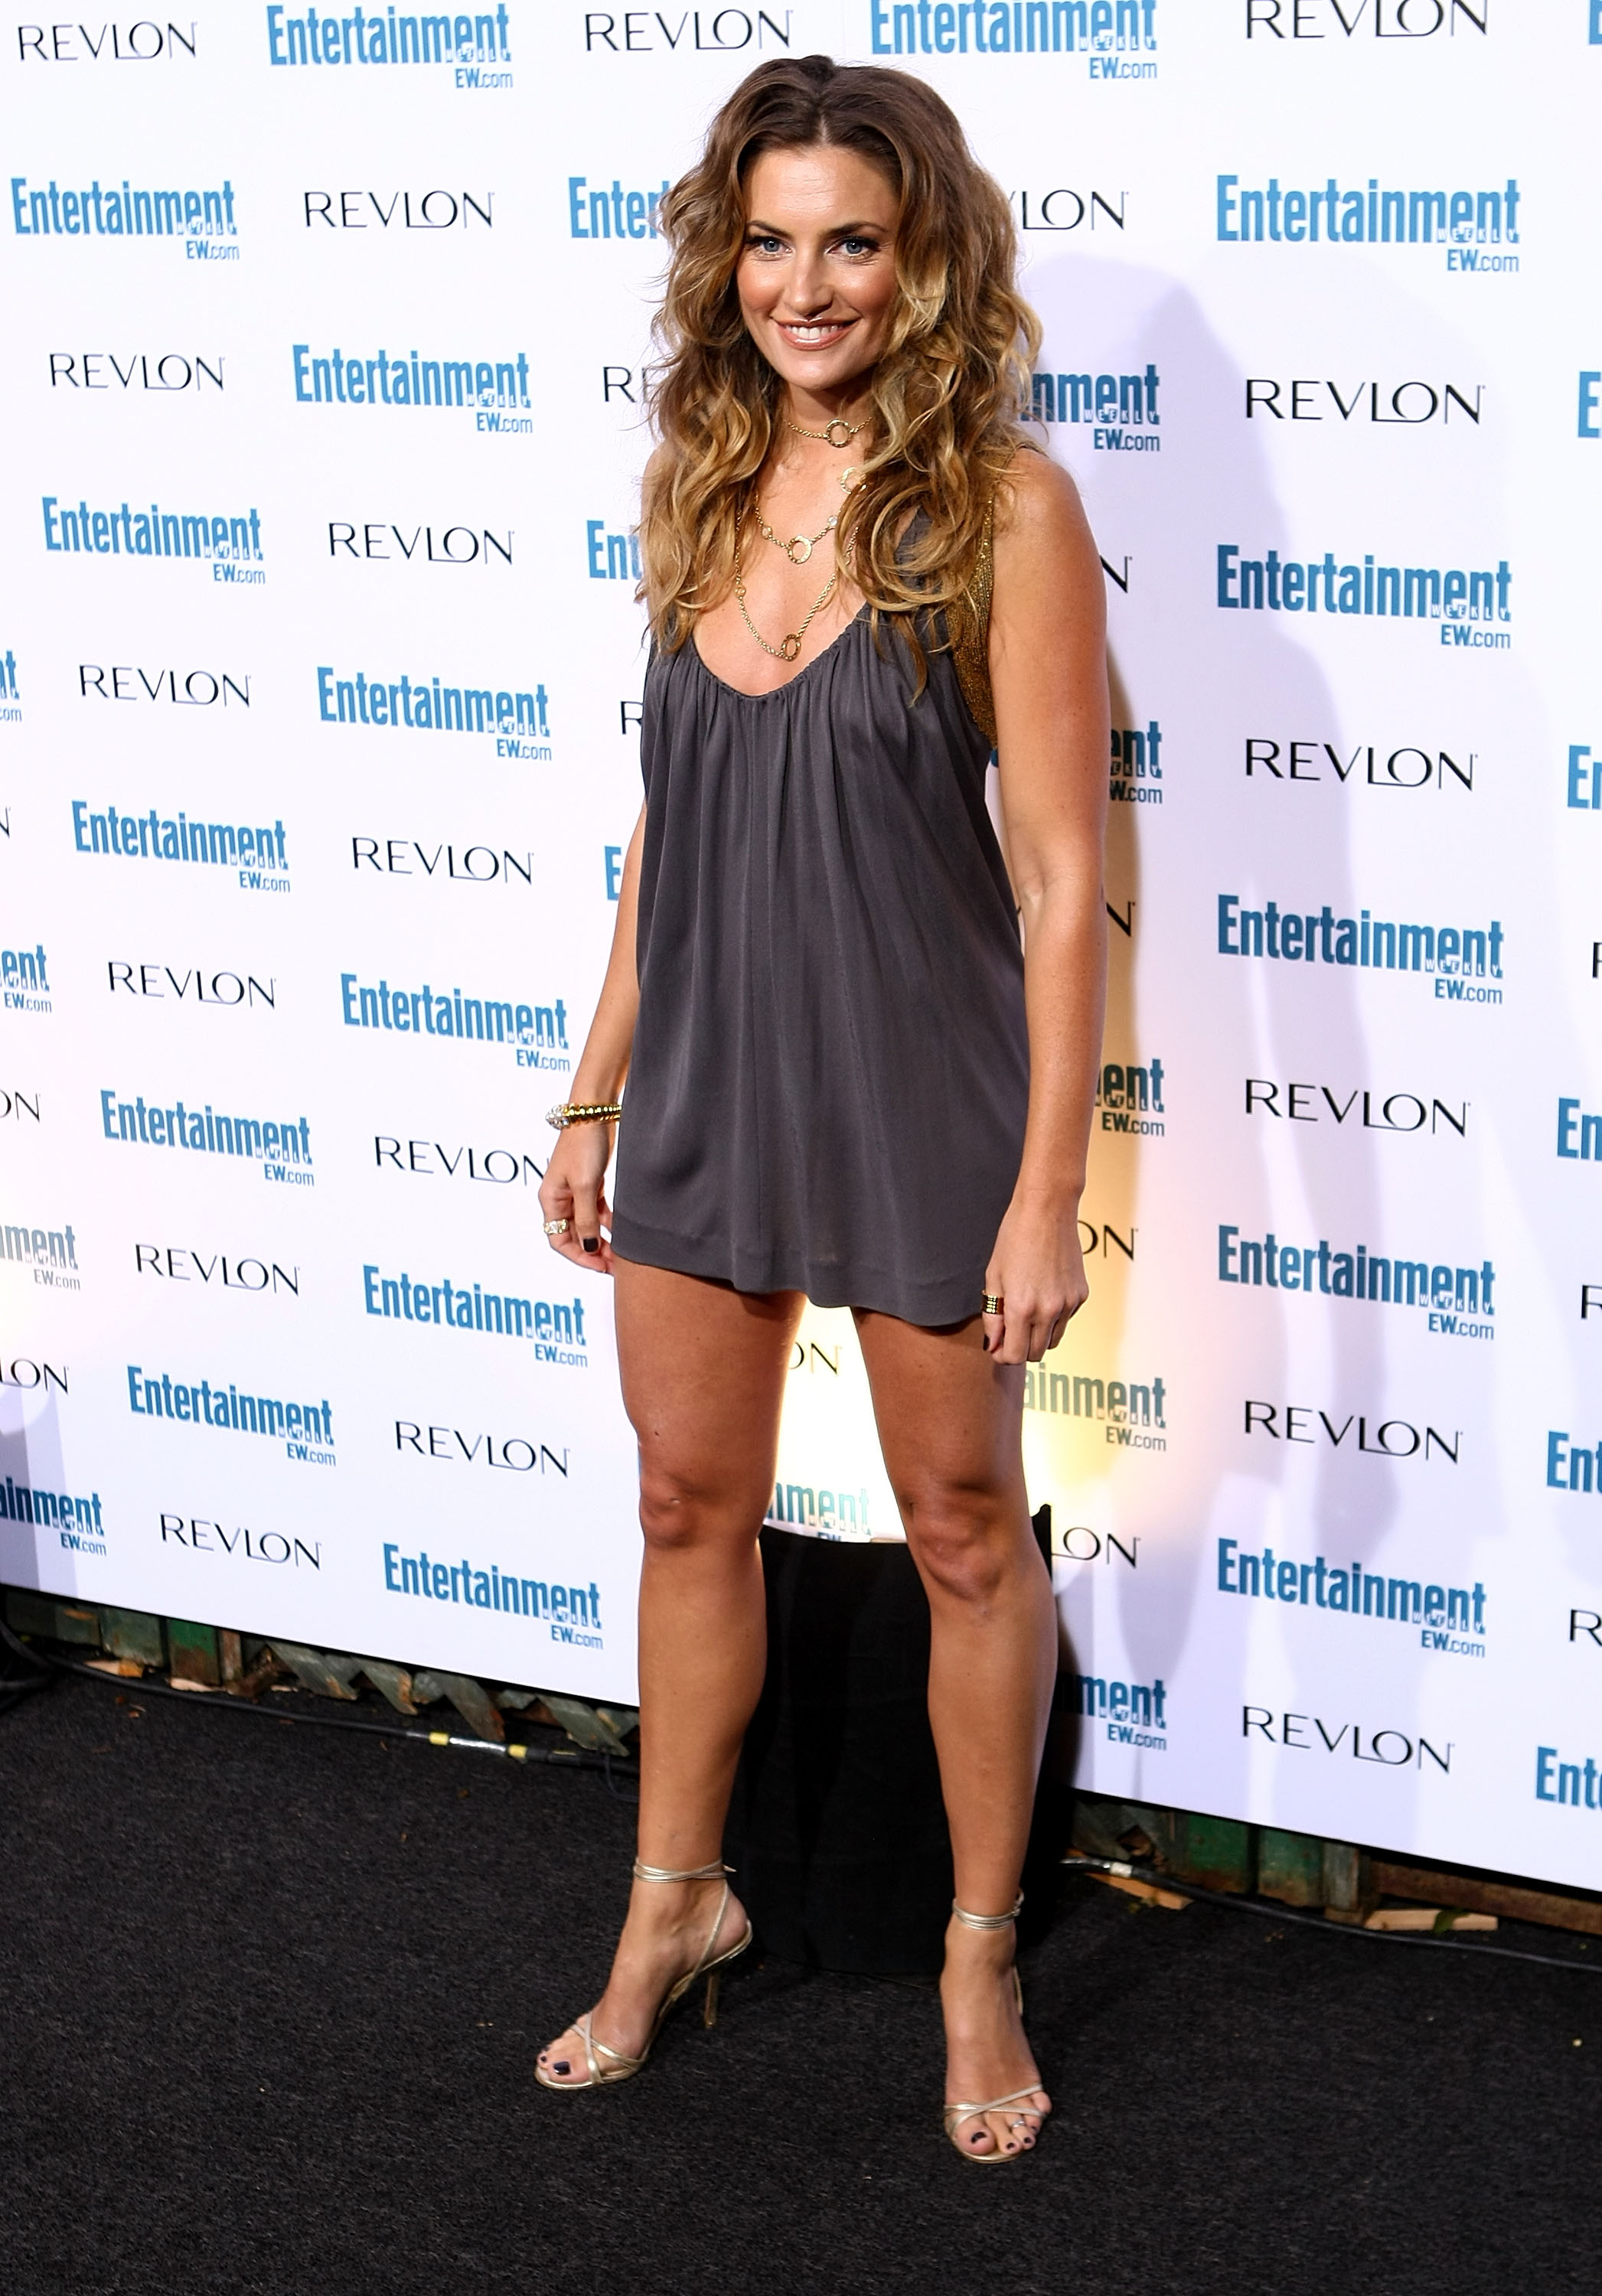 99221_Celebutopia-Madchen_Amick-Entertainment_Weekly66s_Sixth_Annual_Pre-Emmy_Celebration_party-04_122_630lo.jpg